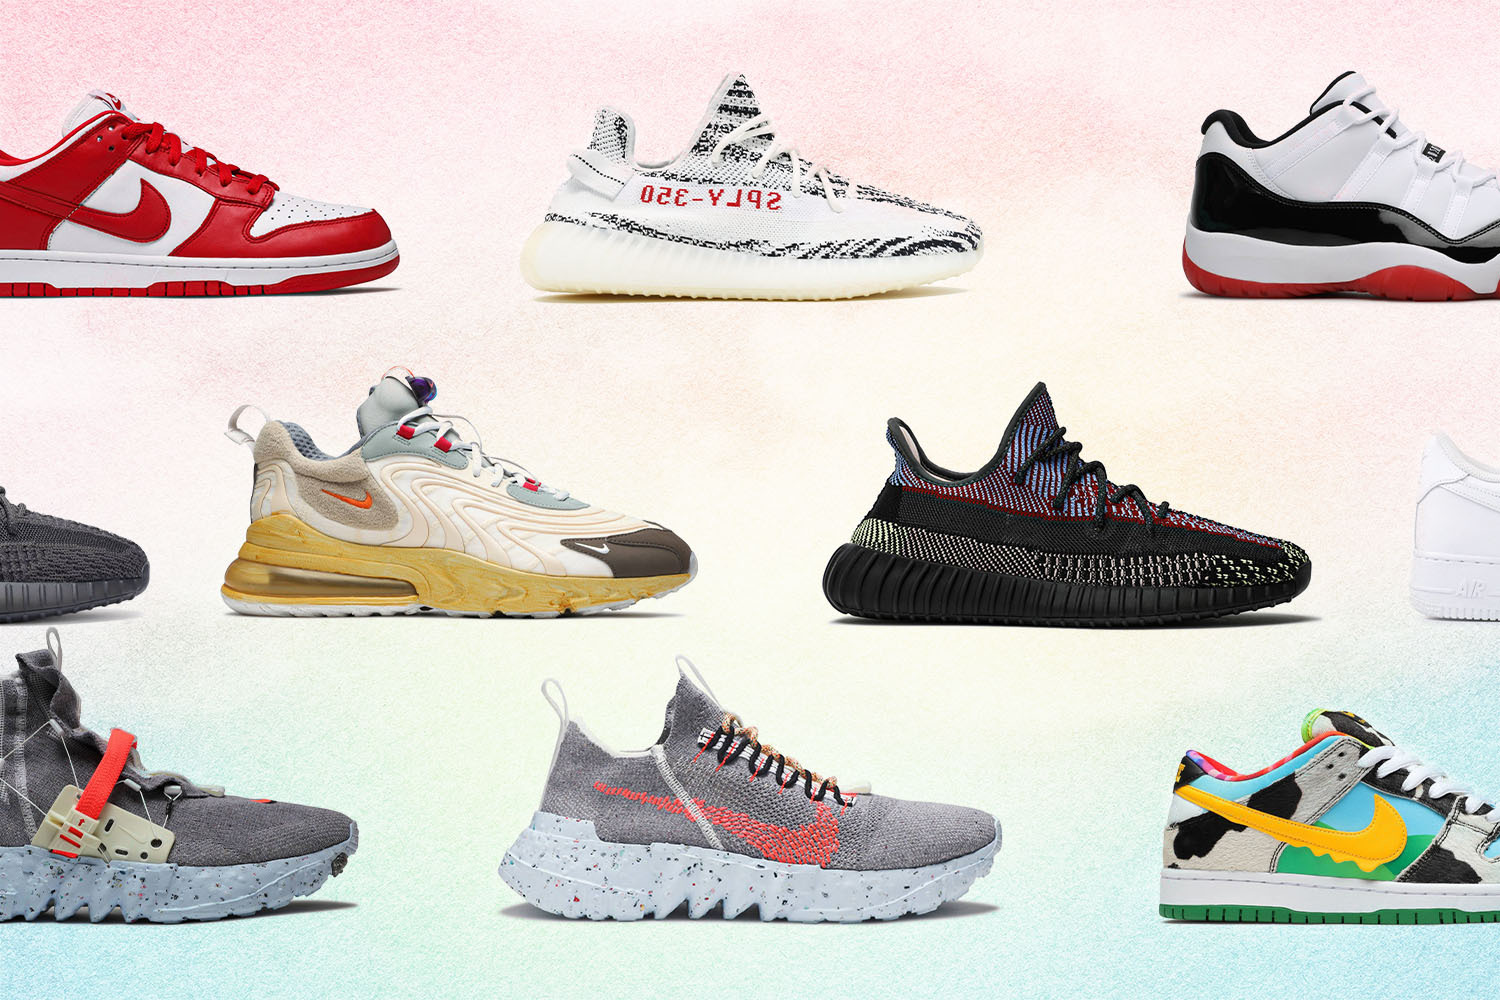 Sneaker culture is part of the new normal, just as it was part of the old normal too